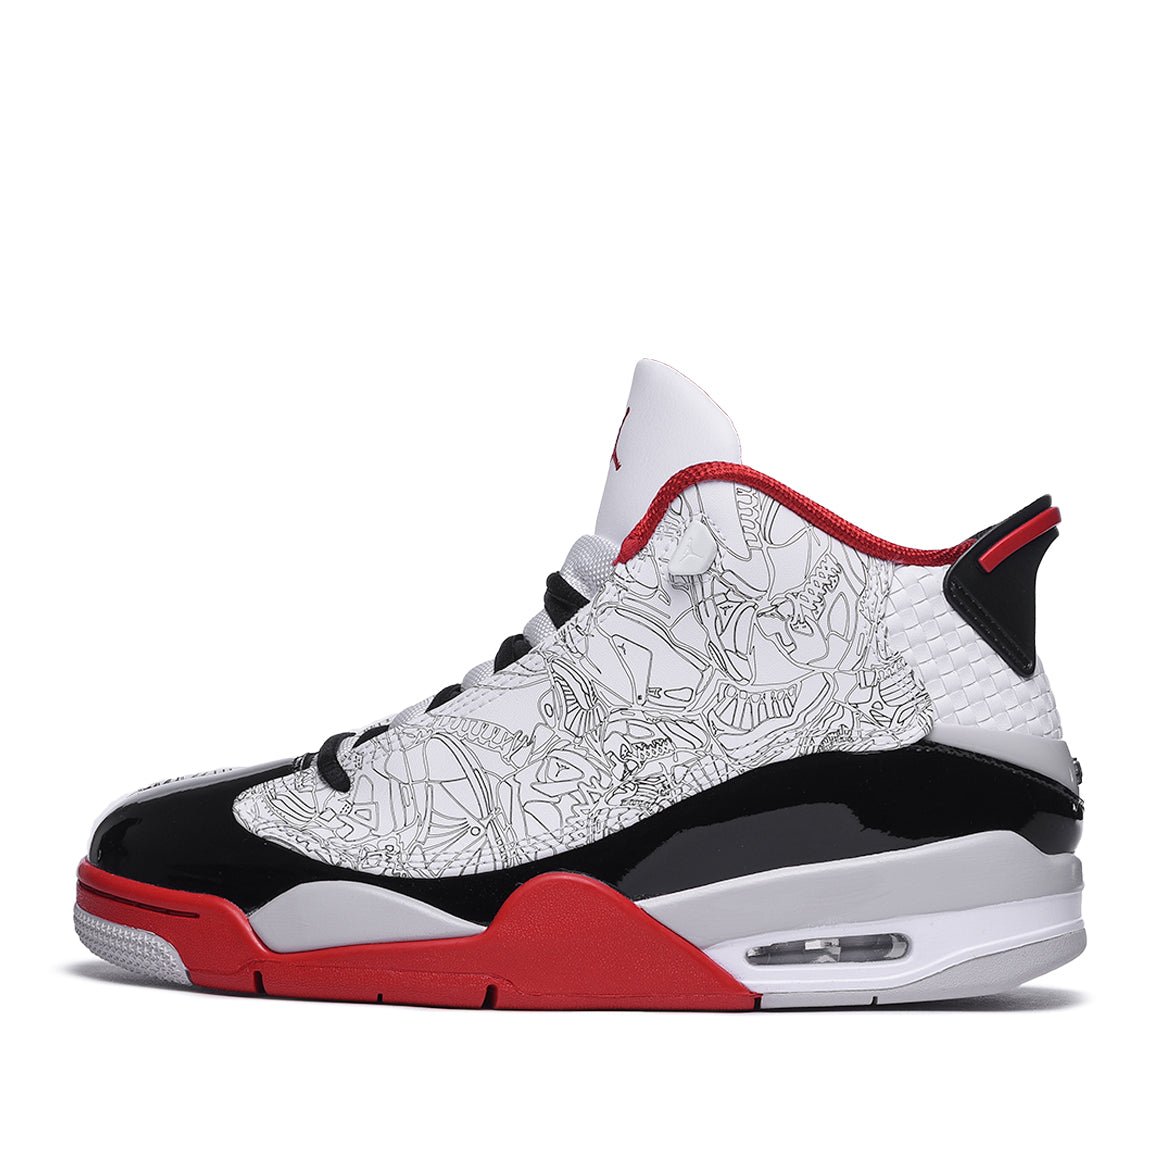 DUB ZERO - WHITE / BLACK / VARSITY RED